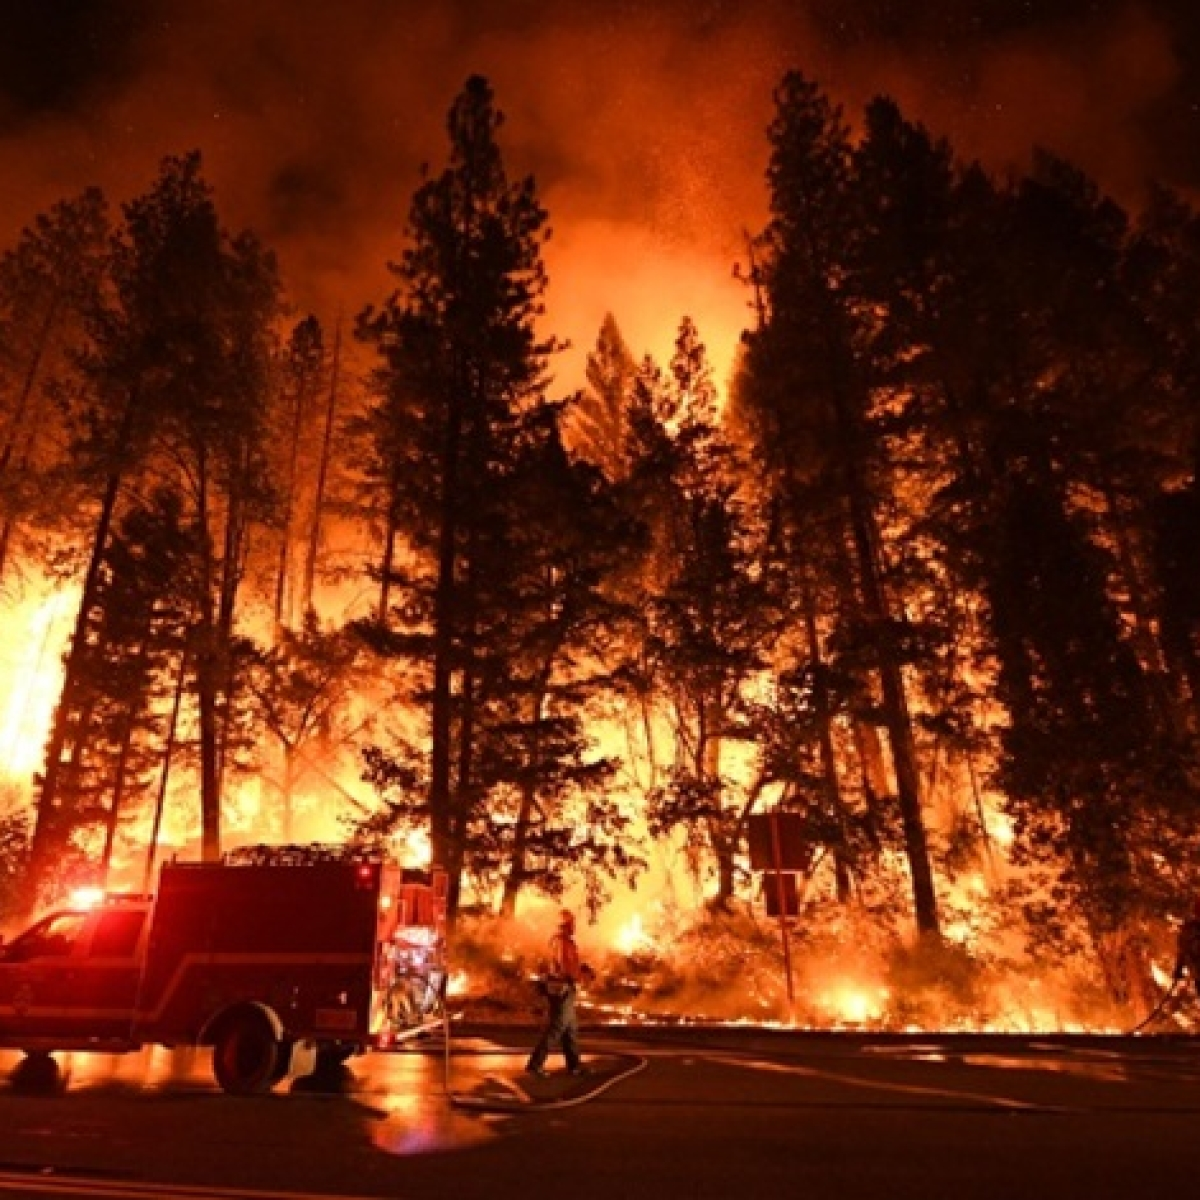 More than 50,000 evacuated due to wild fire in California